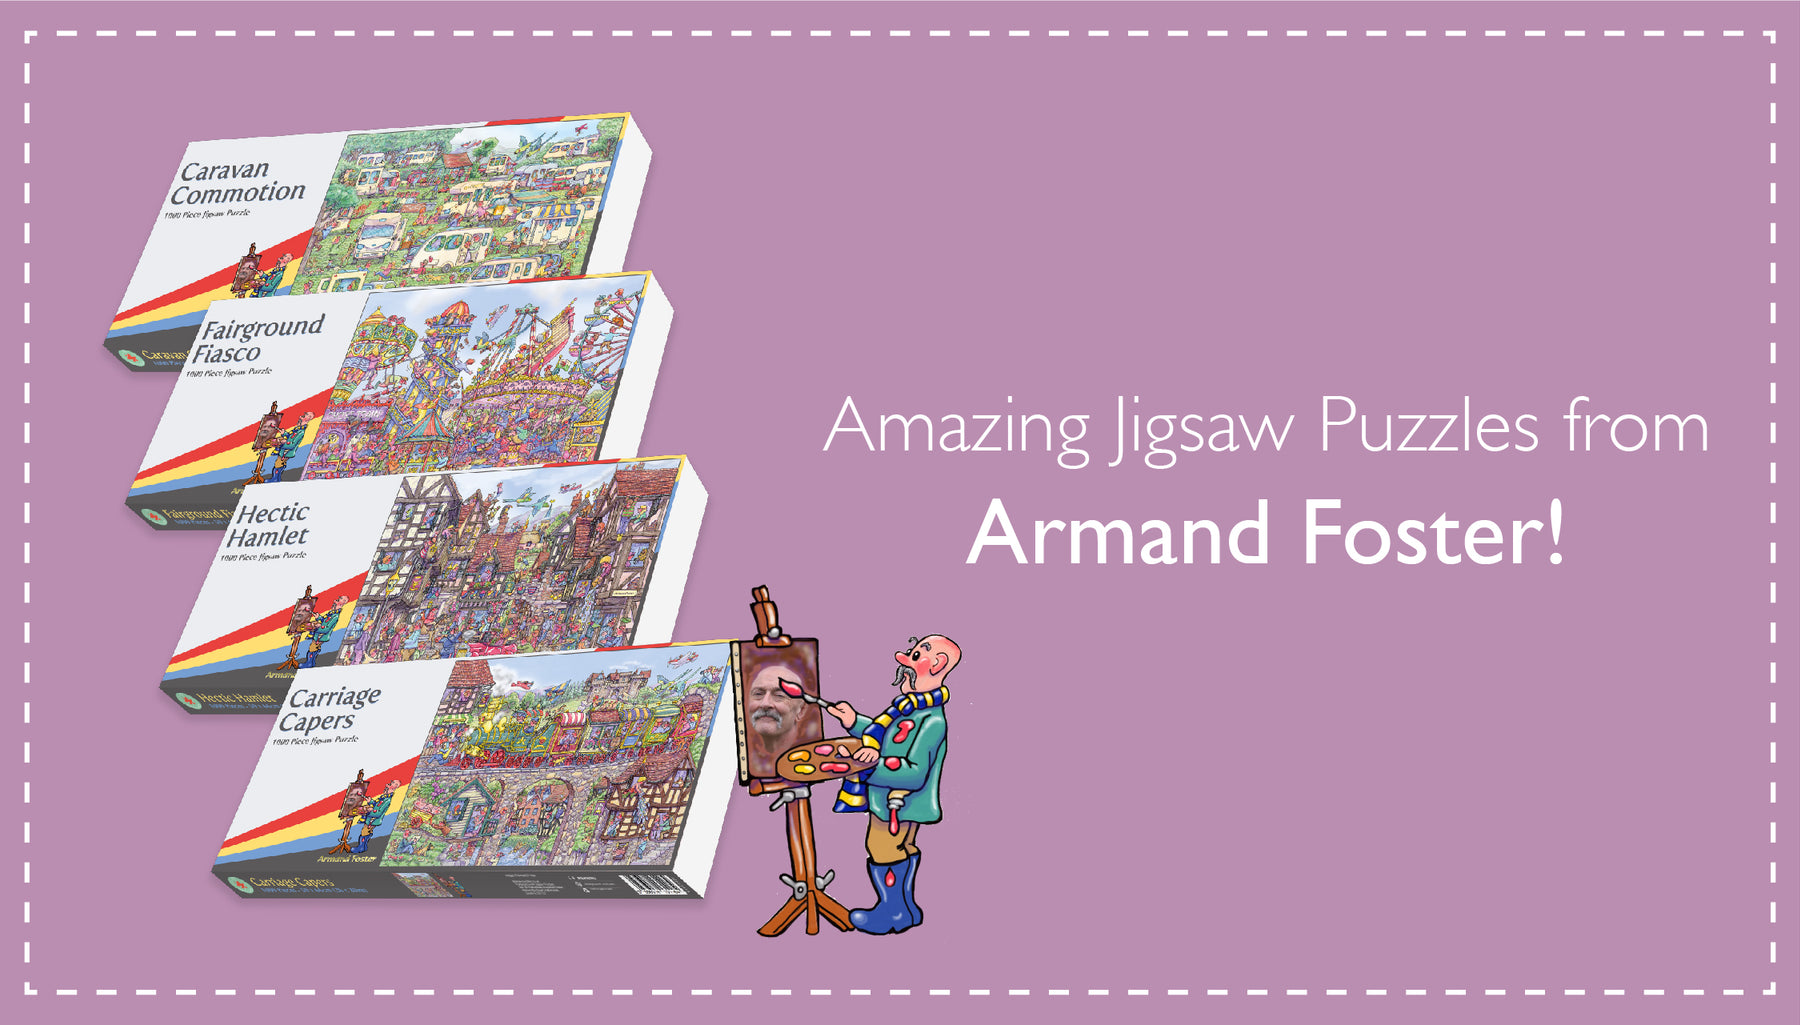 Brand NEW Armand Foster Jigsaw Puzzles Now in Stock!